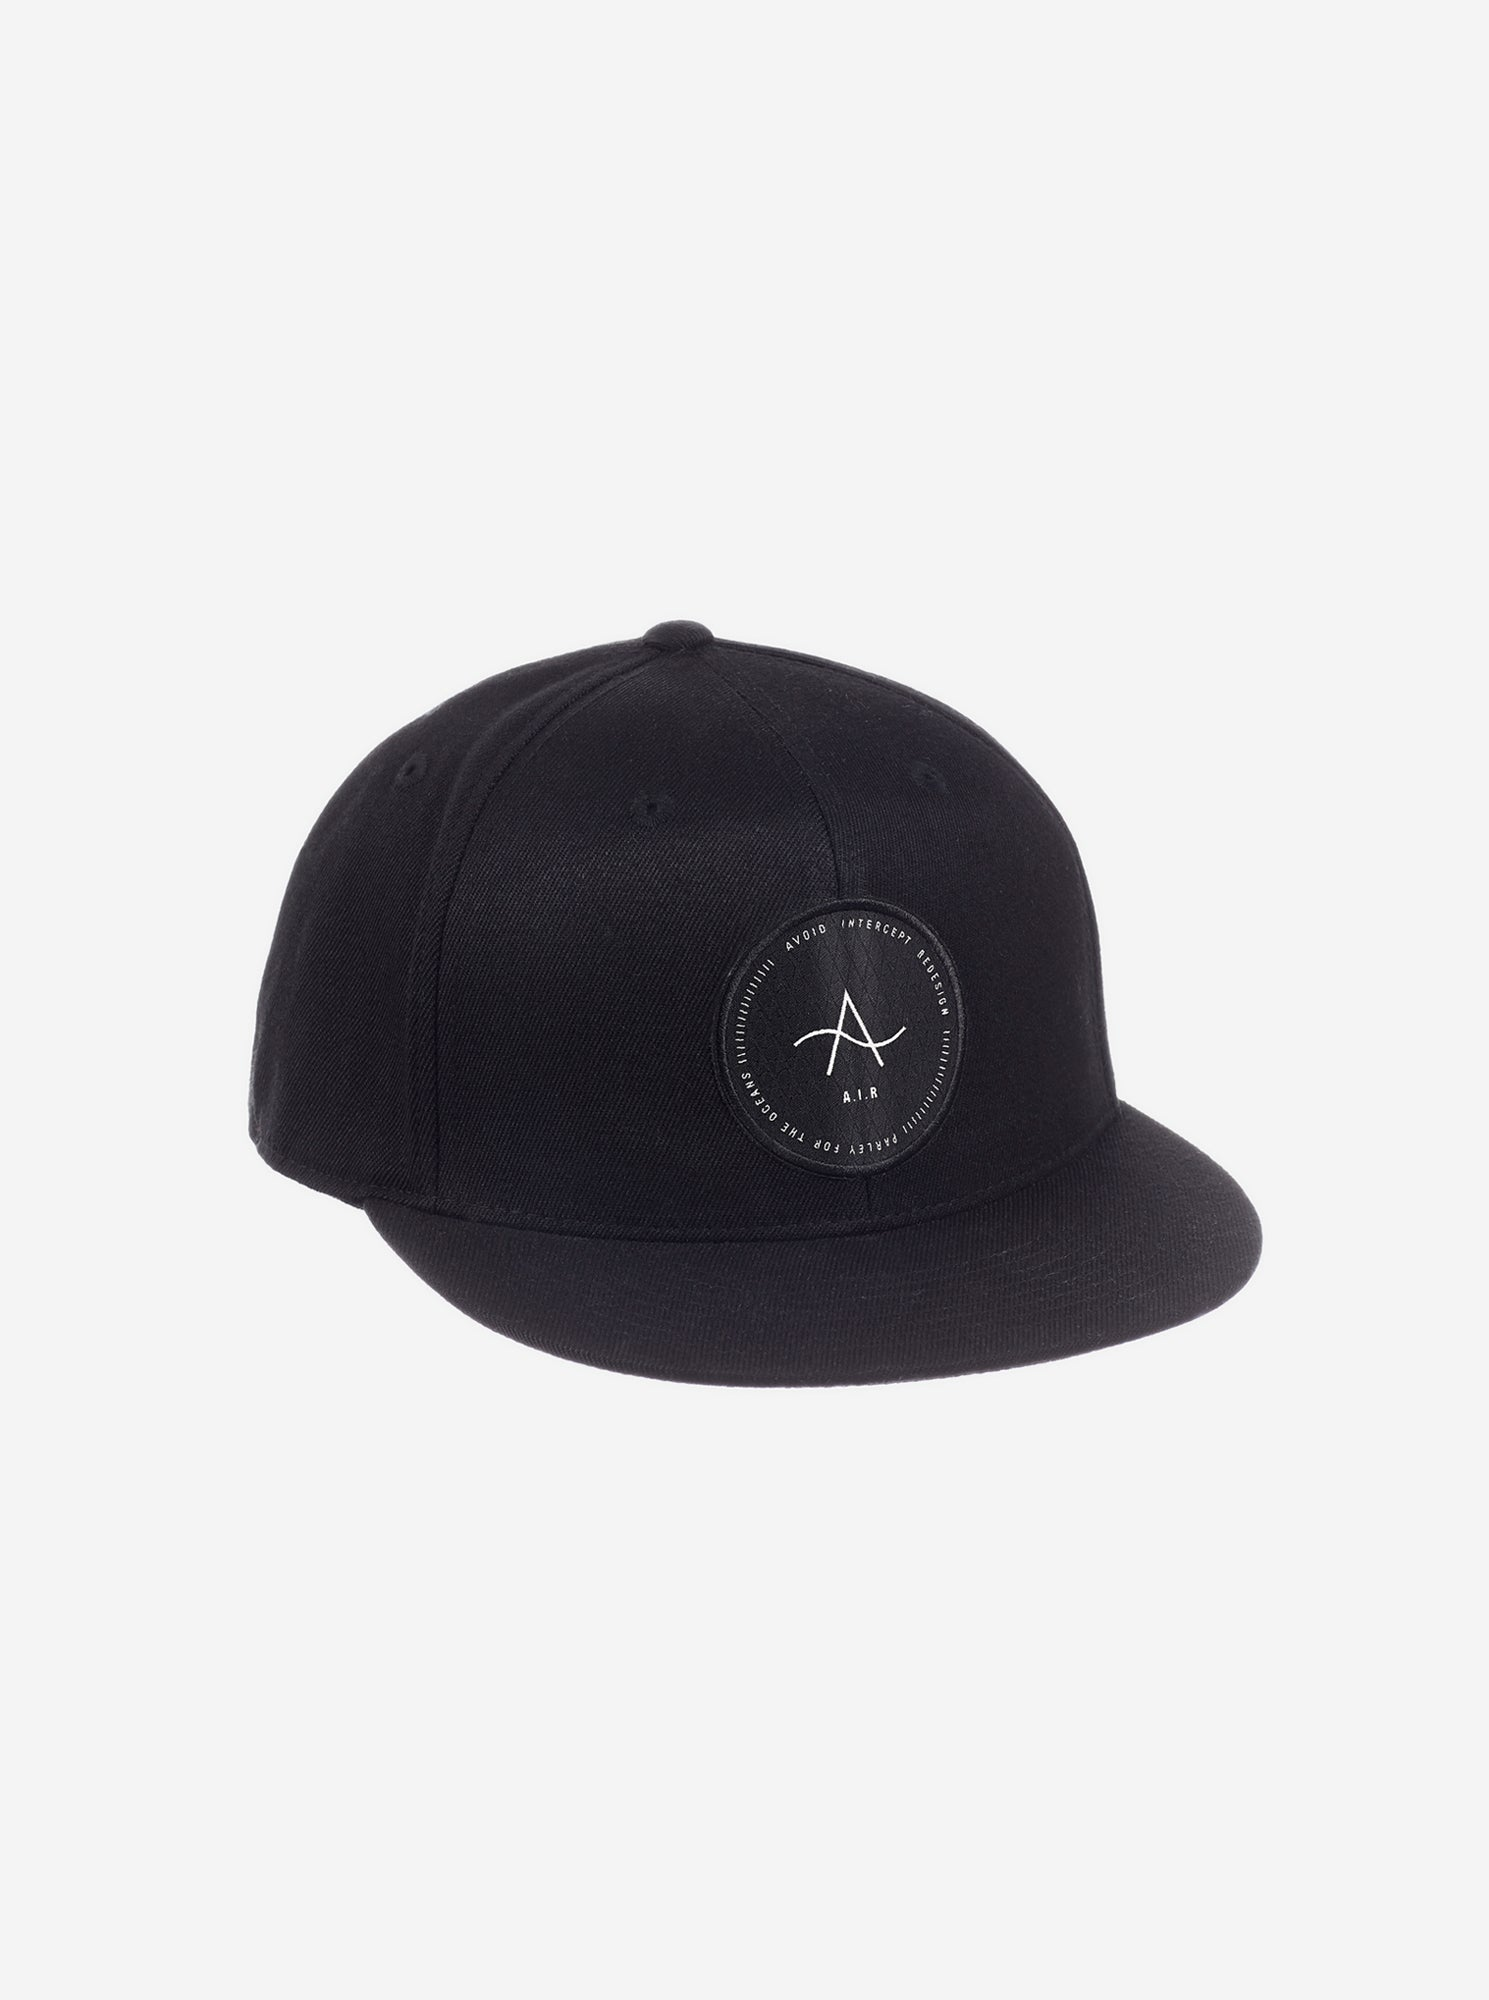 Parley Fitted Cap Shop Parley Com